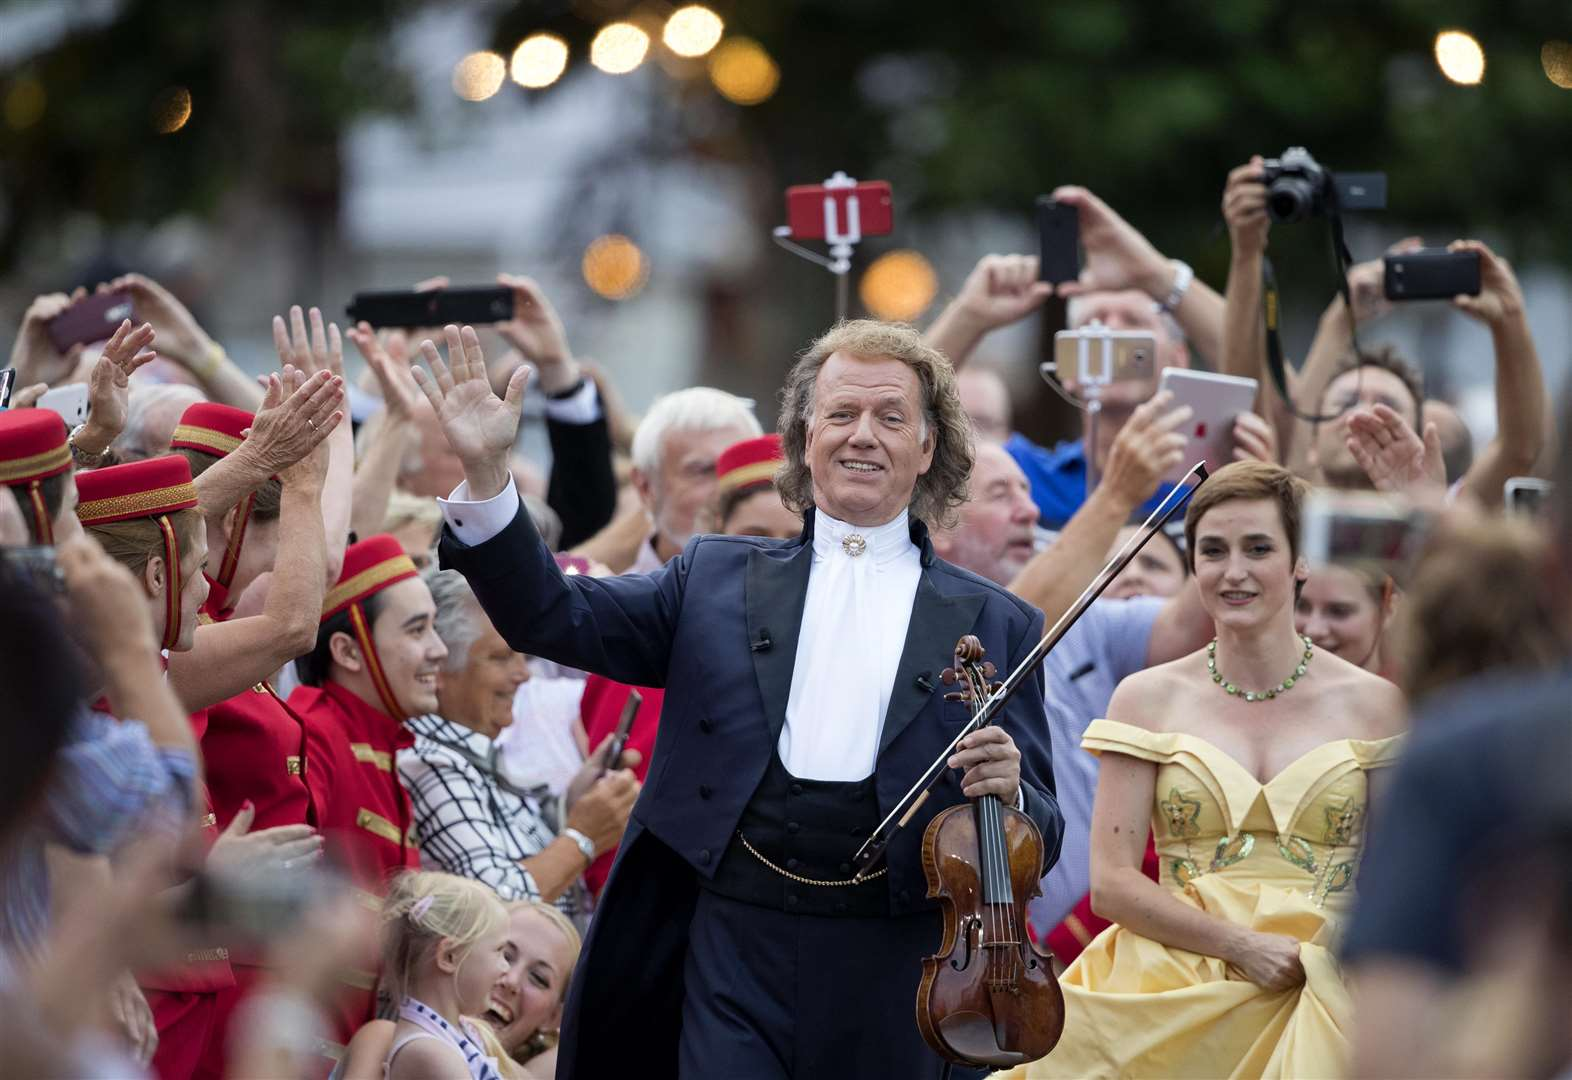 See Andre Rieu's annual Maastricht concert live in Kent